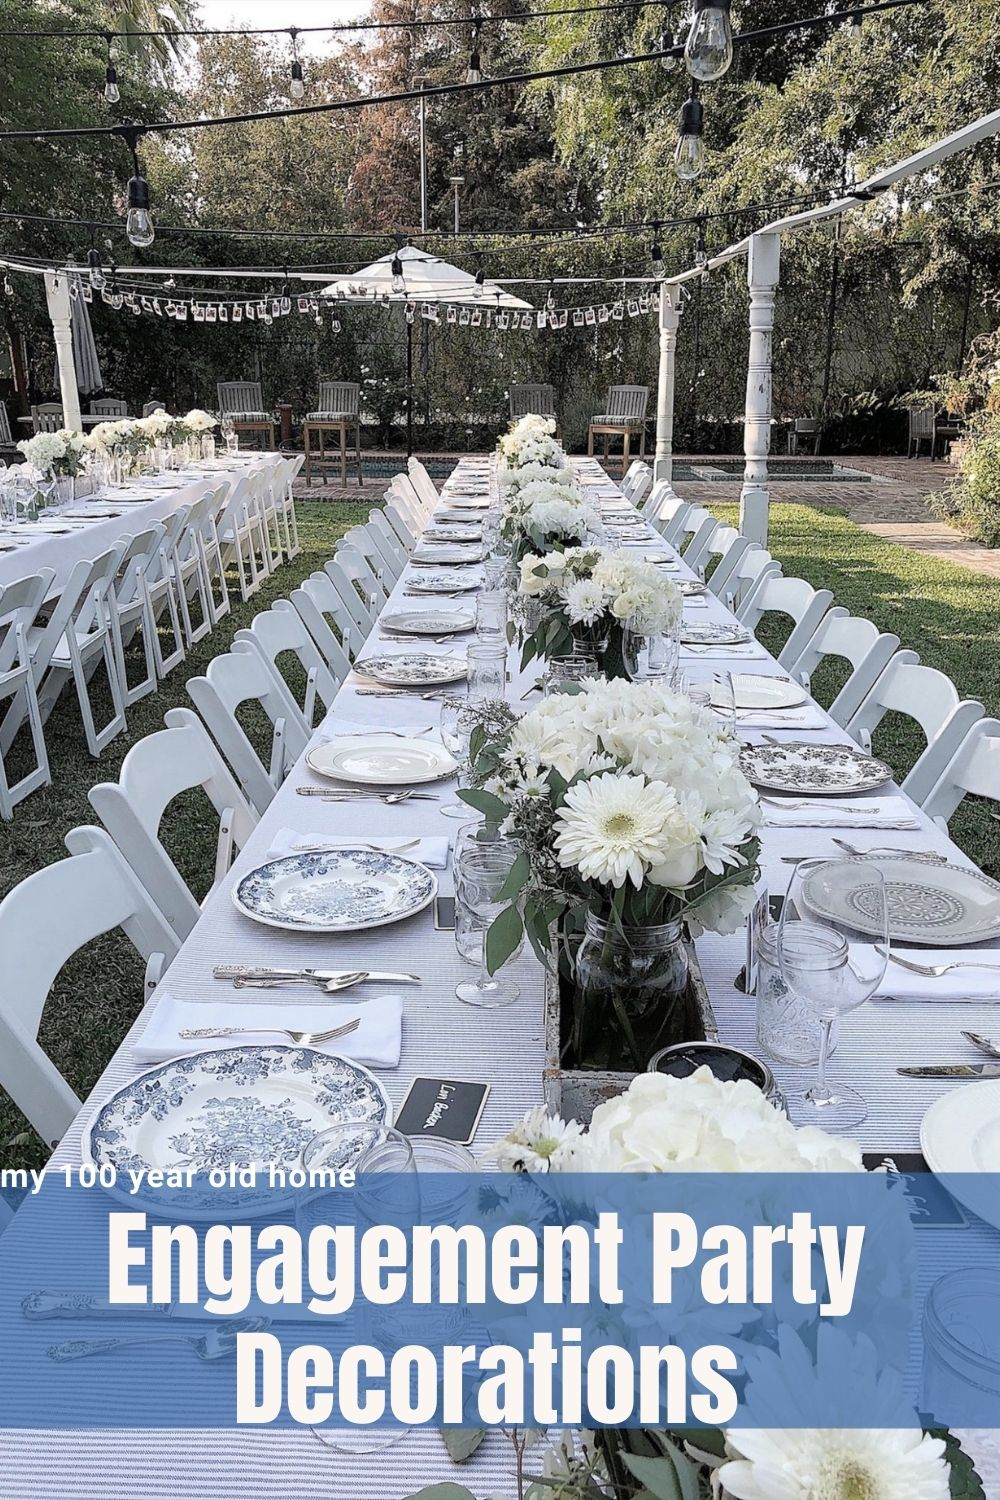 This is parts three and four of my story about creating a magical engagement party. Today I am going to share the engagement party decorations I added to my outdoor dining room.